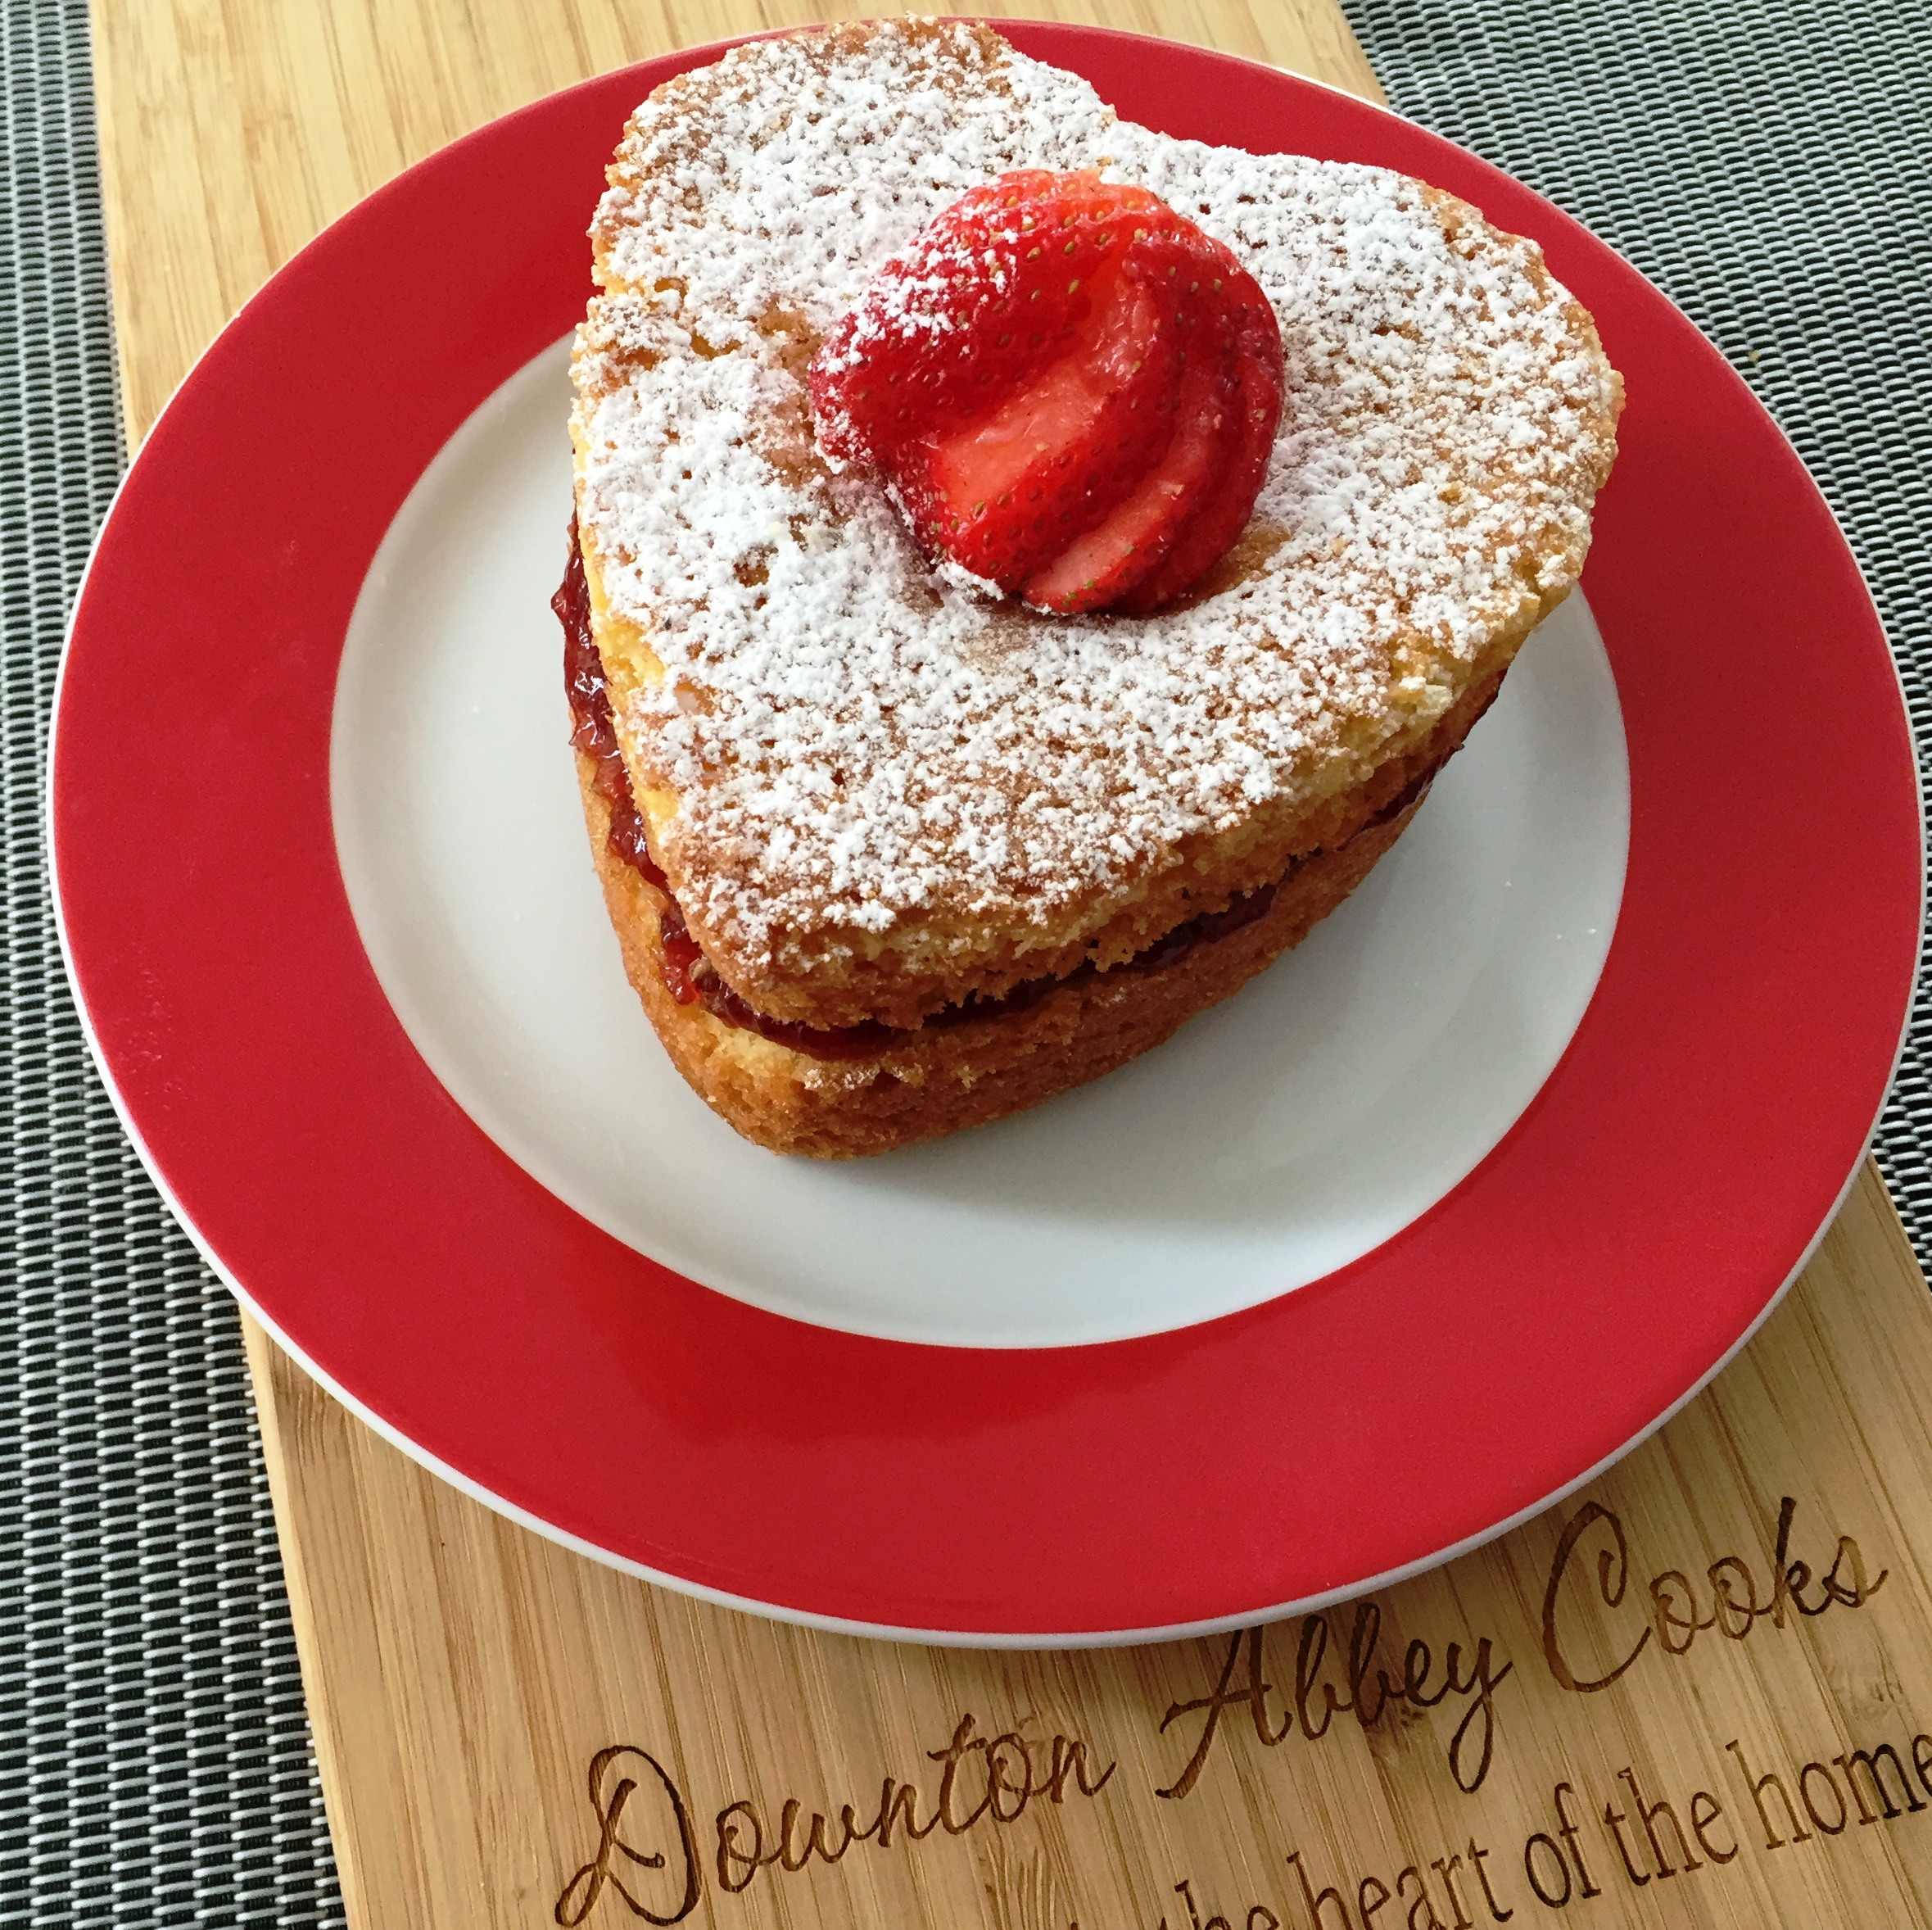 Valentine's Day Love at Downton Abbey is Served with Victoria Sandwich